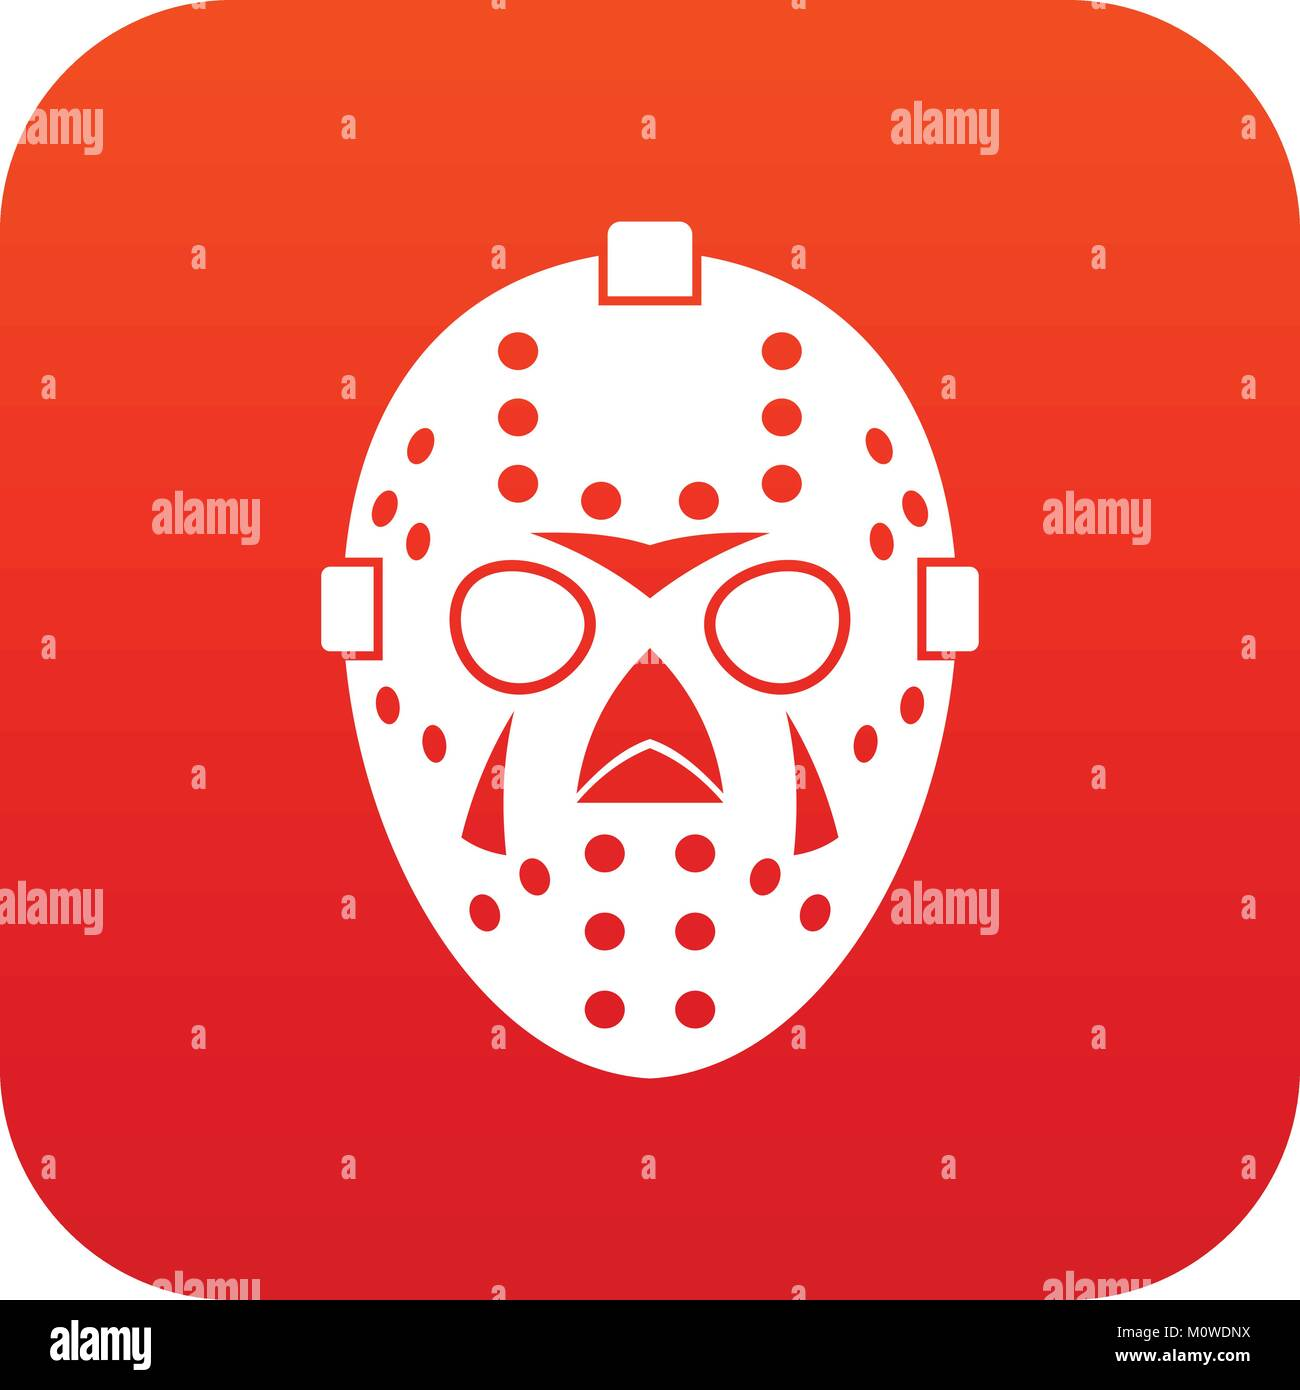 Goalkeeper mask icon digital red - Stock Image